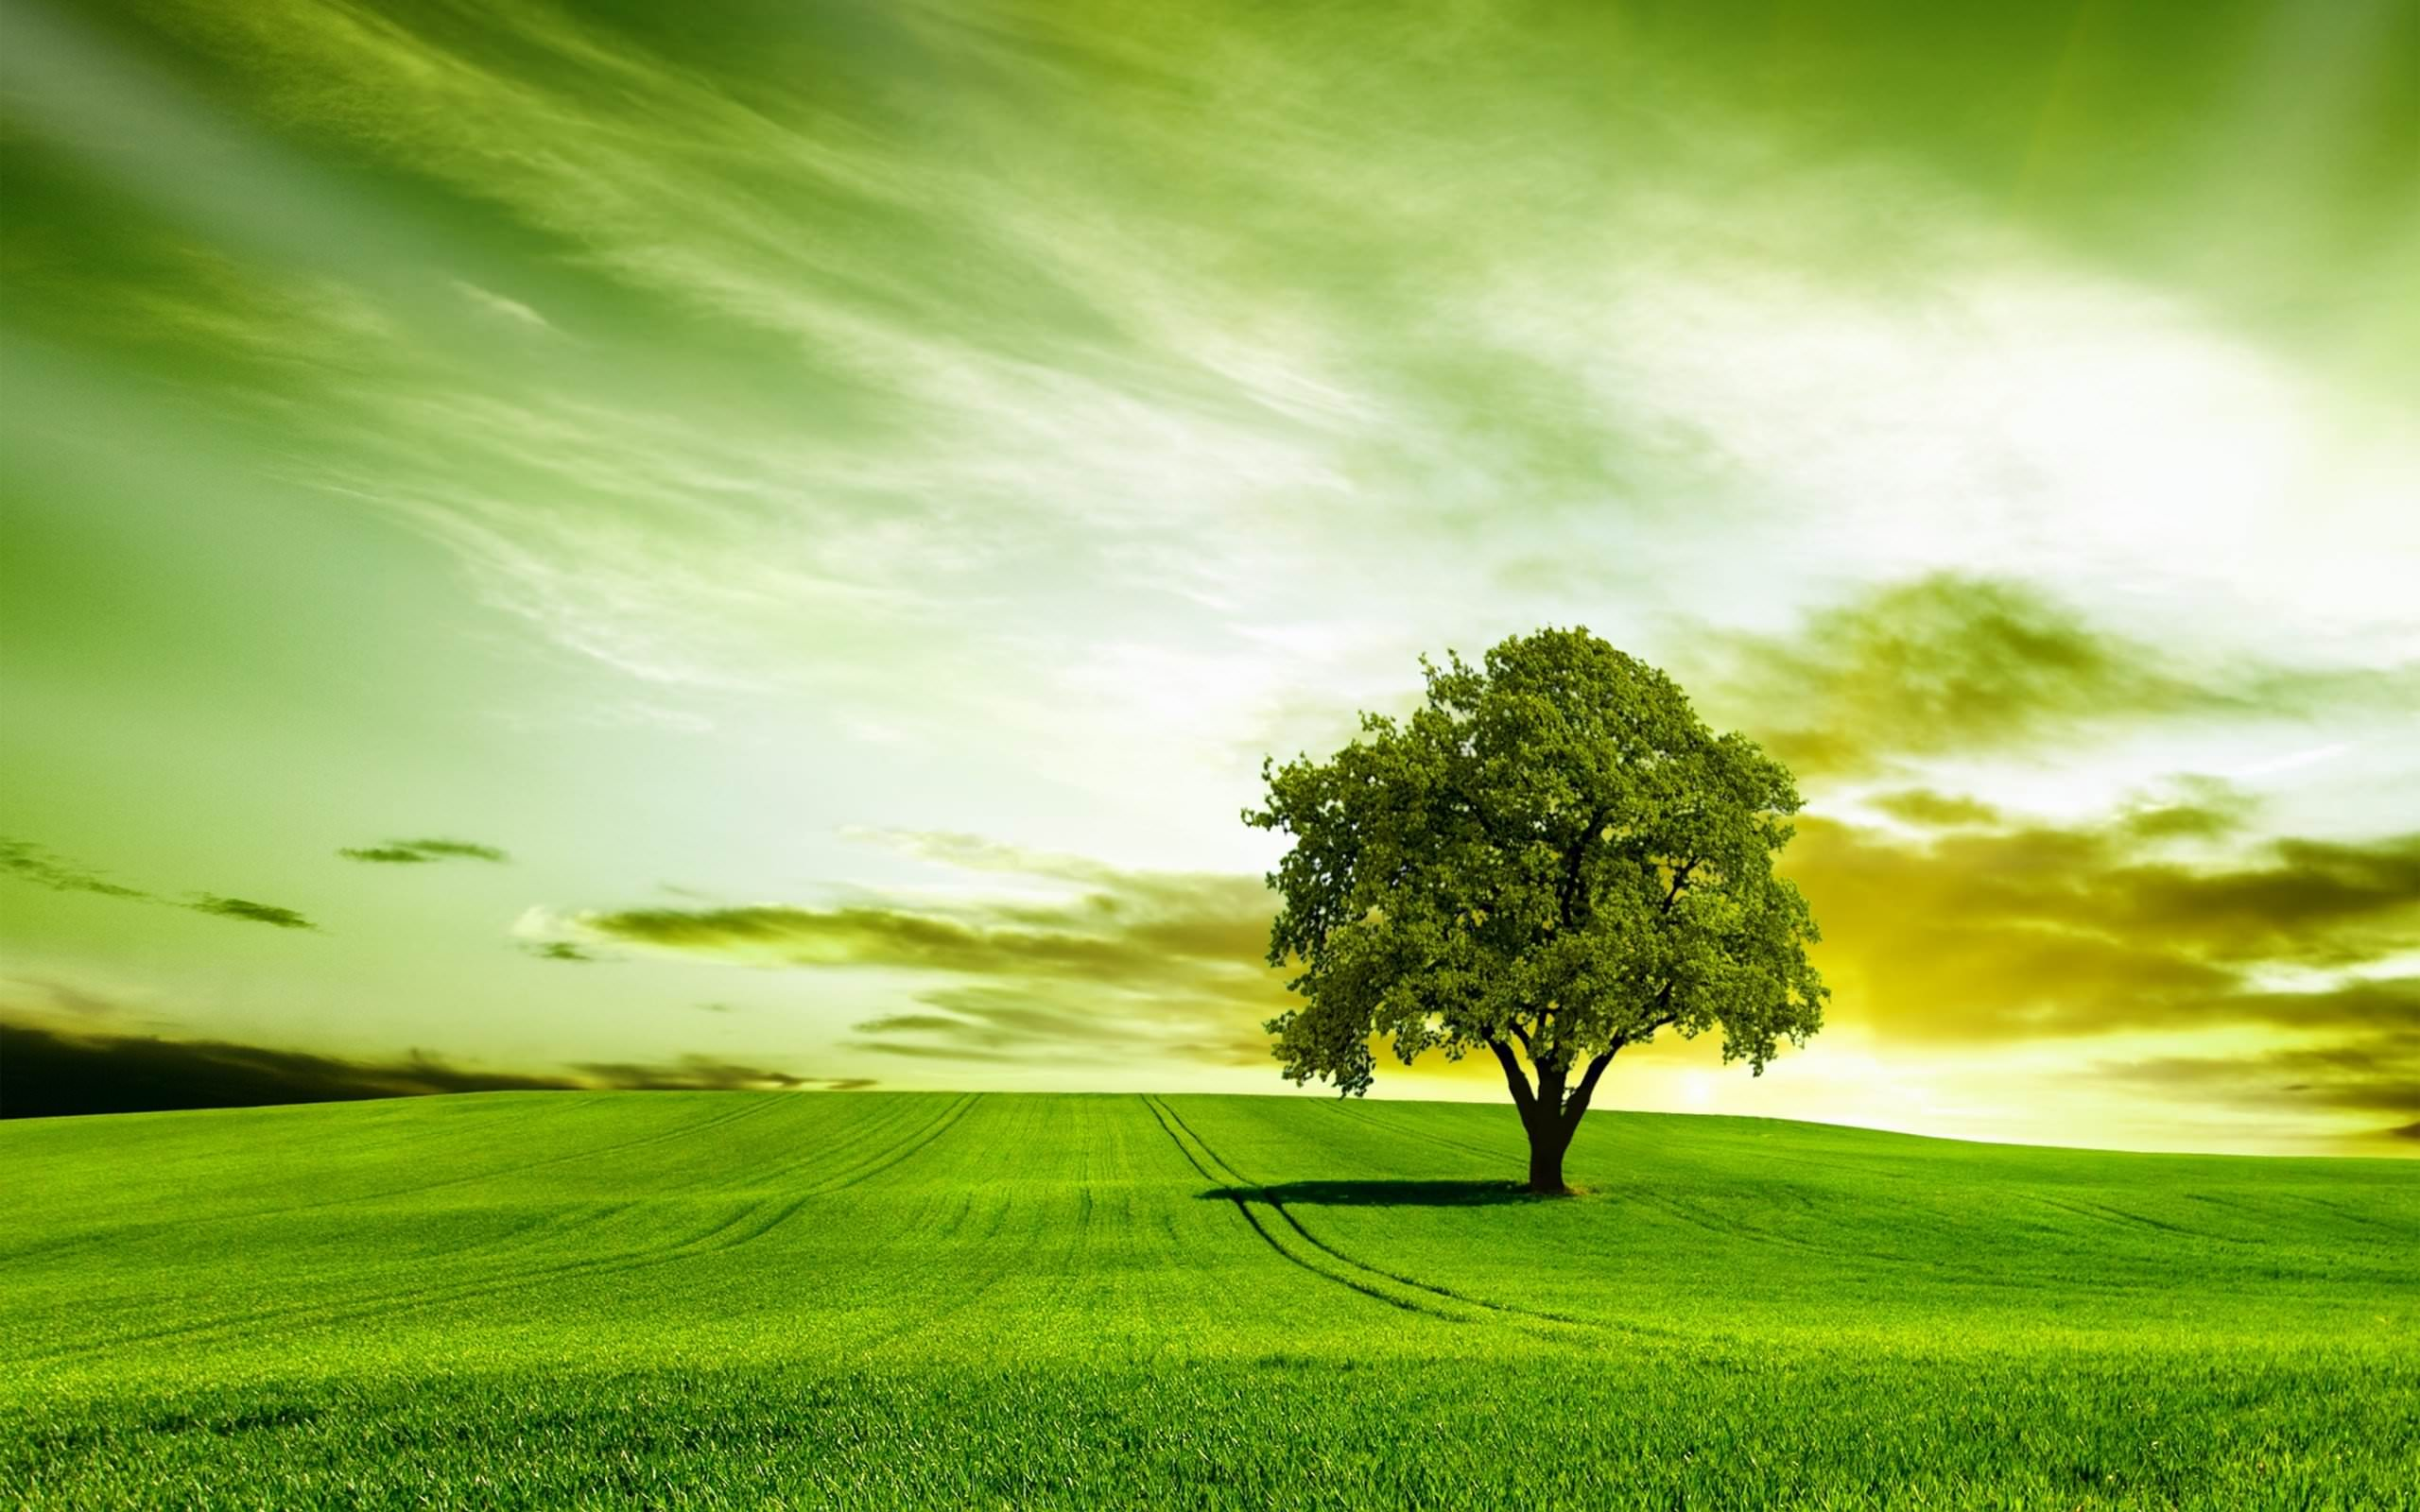 Nature Wallpaper For Facebook Cover Page Hd Green Tree High Quality ...